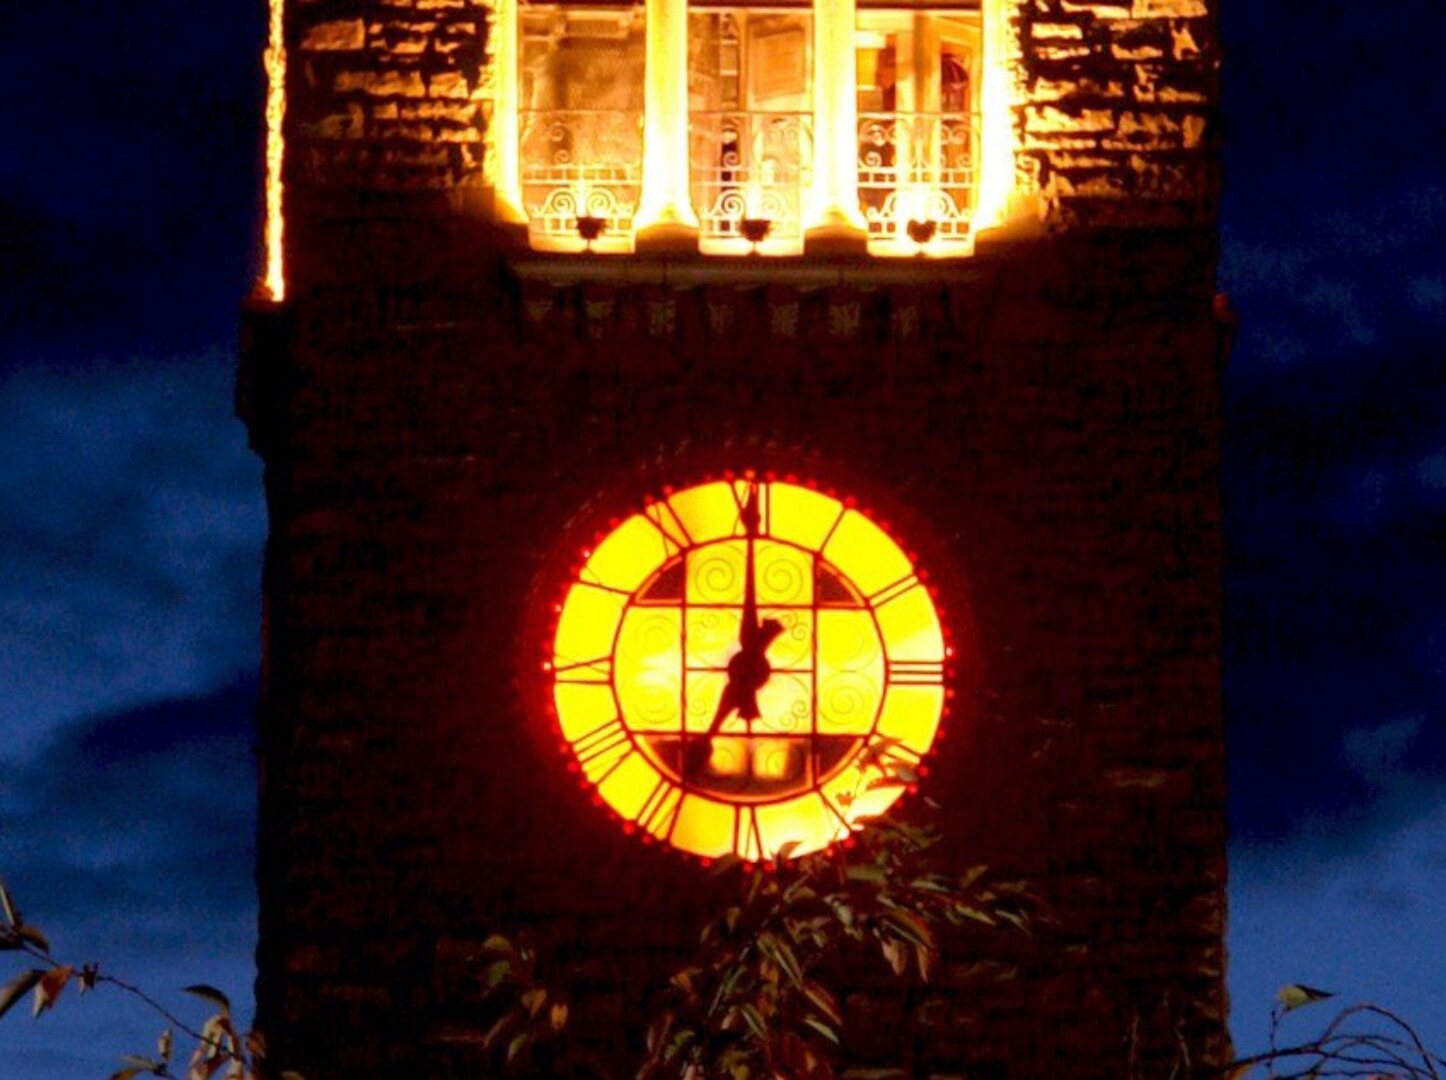 Pumpkin clock tower